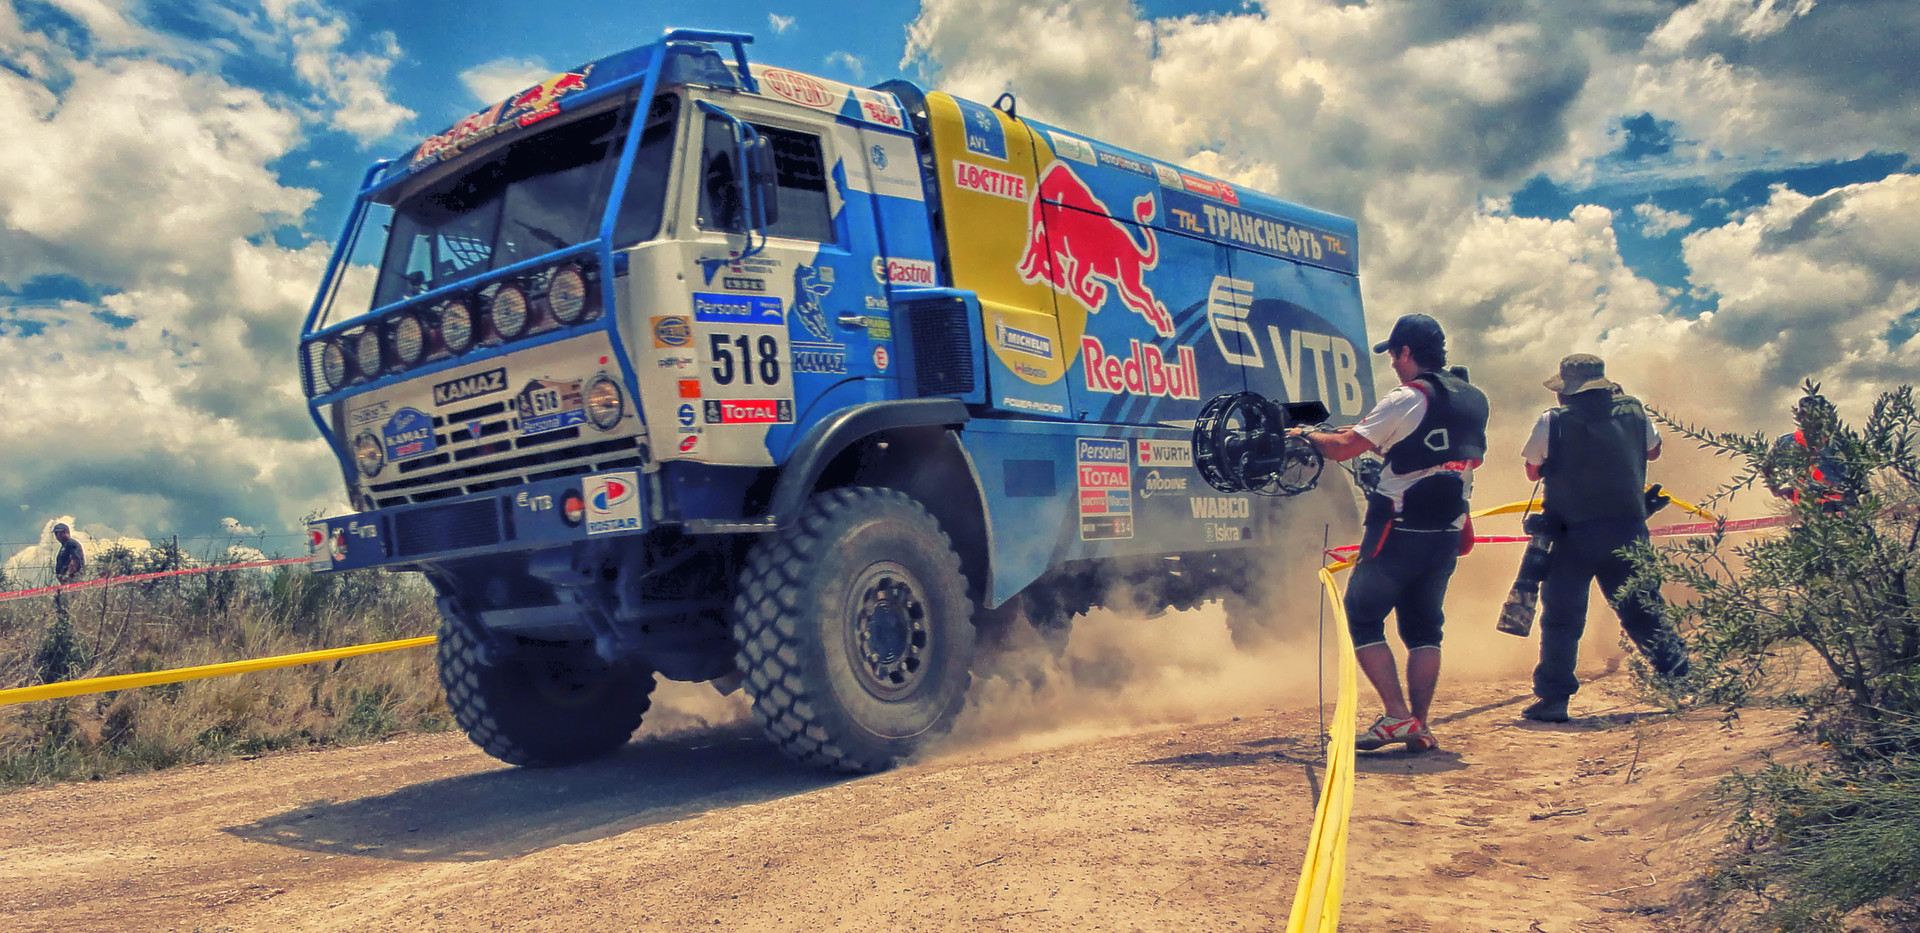 hybrid Steadycam Basson Steady camera stabilizer with digital cinema camera, customer photo, rally Dakar redbull truck